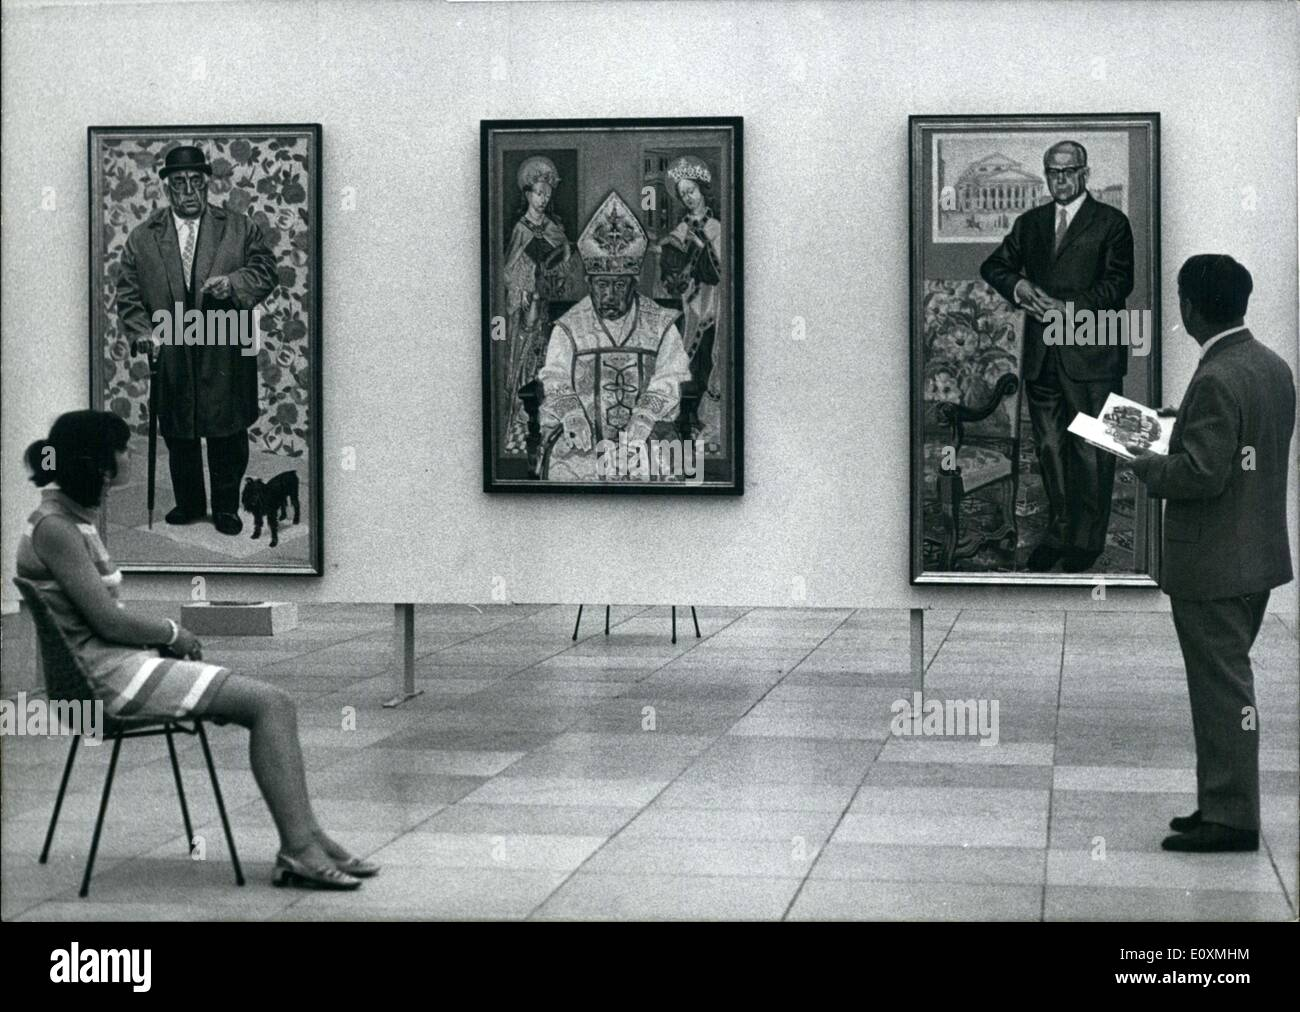 Jun. 06, 1967 - Great Arts Exhibition Munich 1967 In the evening of the 7th of June will be inaugurated the ''Great Arts Exhibition 1967'' in the House of Arts in Munich. The three great groups of artists -Secession, New group and New Munich Artist Company - are, as always, represented. Altogether are to be seen in the House of Arts and the garden belonging to it about 1.200 paintings, sculptures, etchings, woodcuts etc.. The exhibition is opened from 8th June until 24th September, 1967. Ops.: Adolf Hartmann, Munich: left: self portrait (oil, 145 x 100 cm) middle: Abt Prof - Stock Image